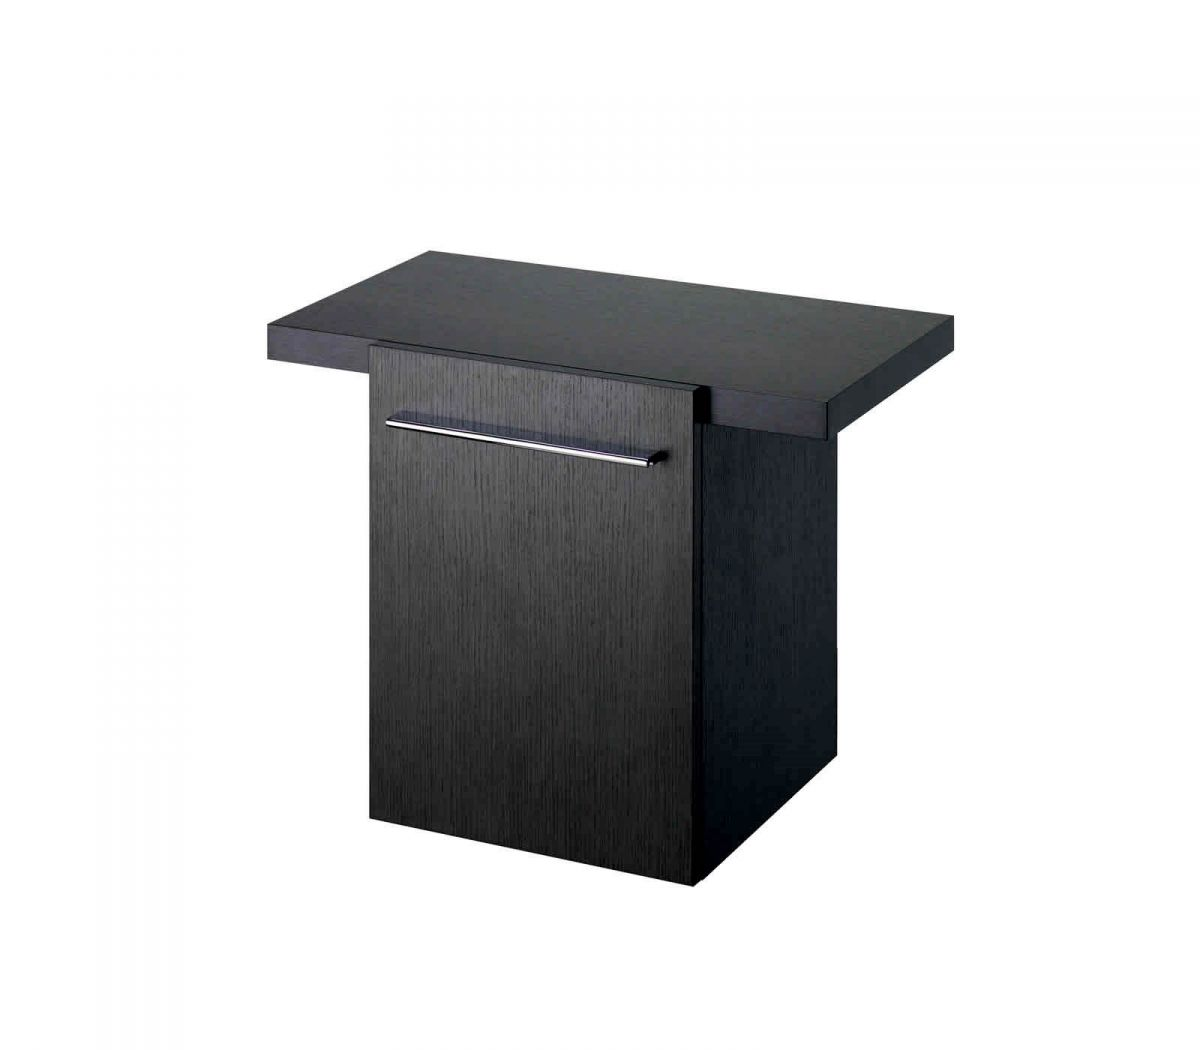 ideal standard daylight side cabinet with countertop uk bathrooms